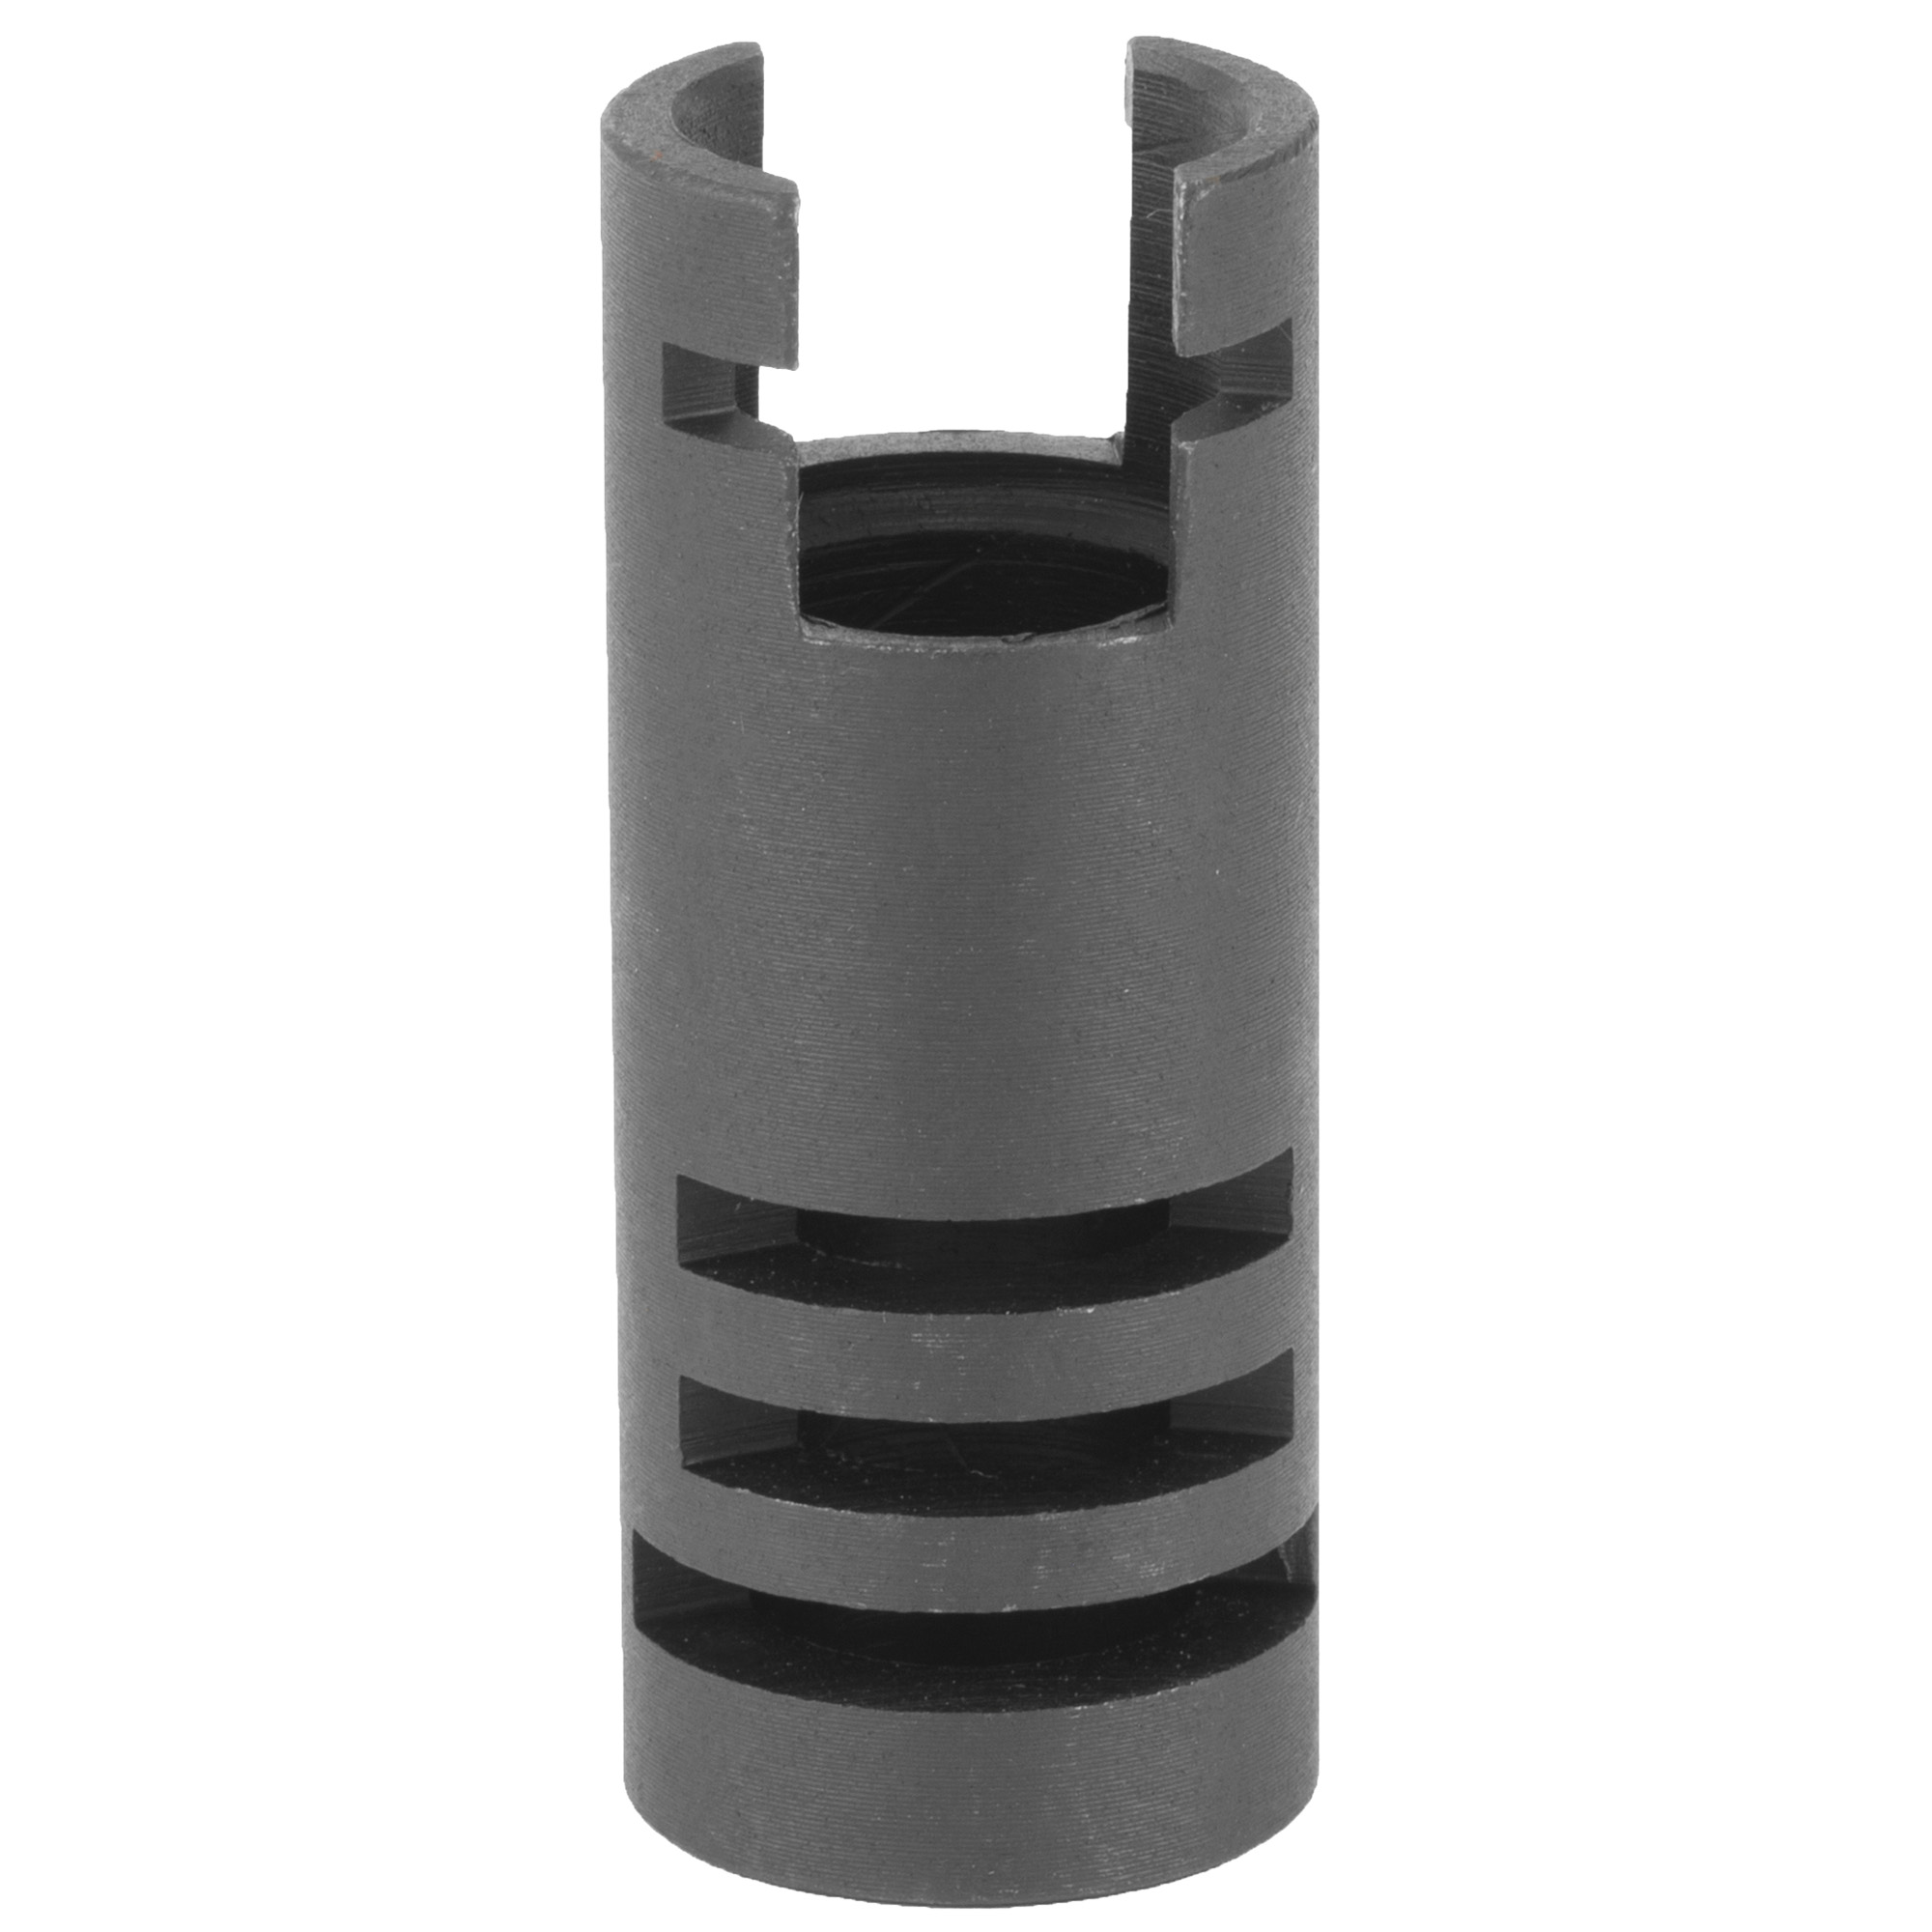 Pin on SKS muzzle brake made by NCSTAR.